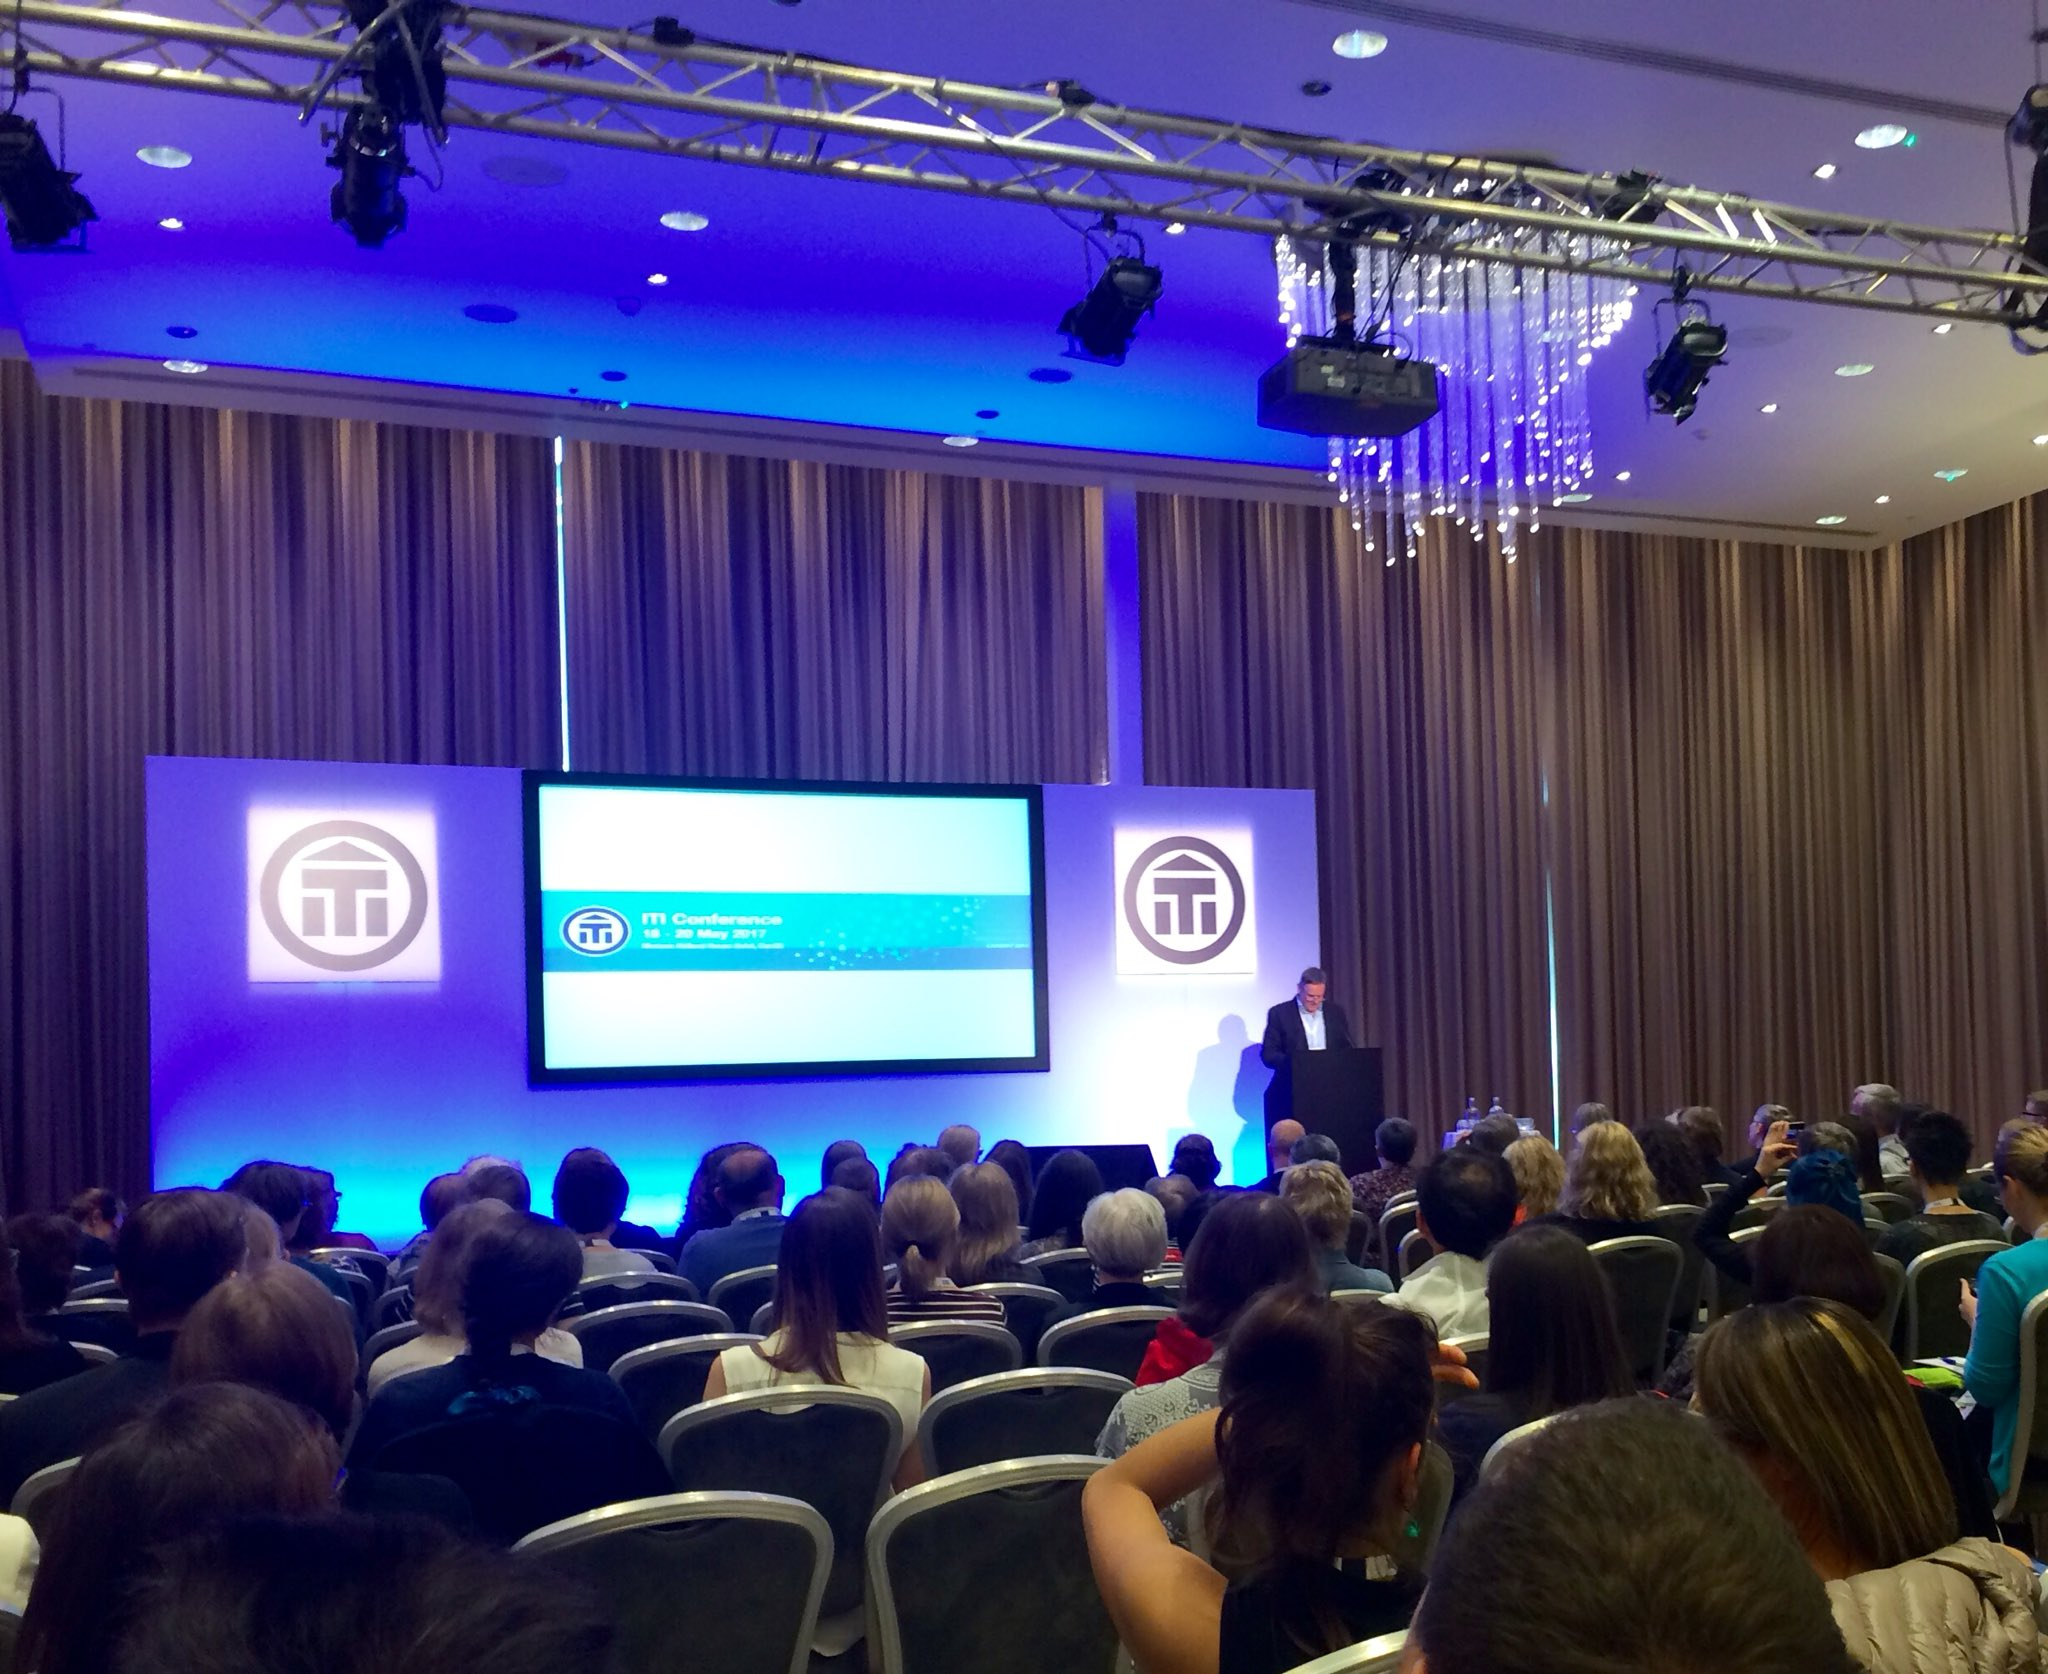 Can't believe it's already the closing session of #ITIConf17! The sessions have been inspiring and the atmosphere fantastic 😄 https://t.co/gVgfHe9CRn